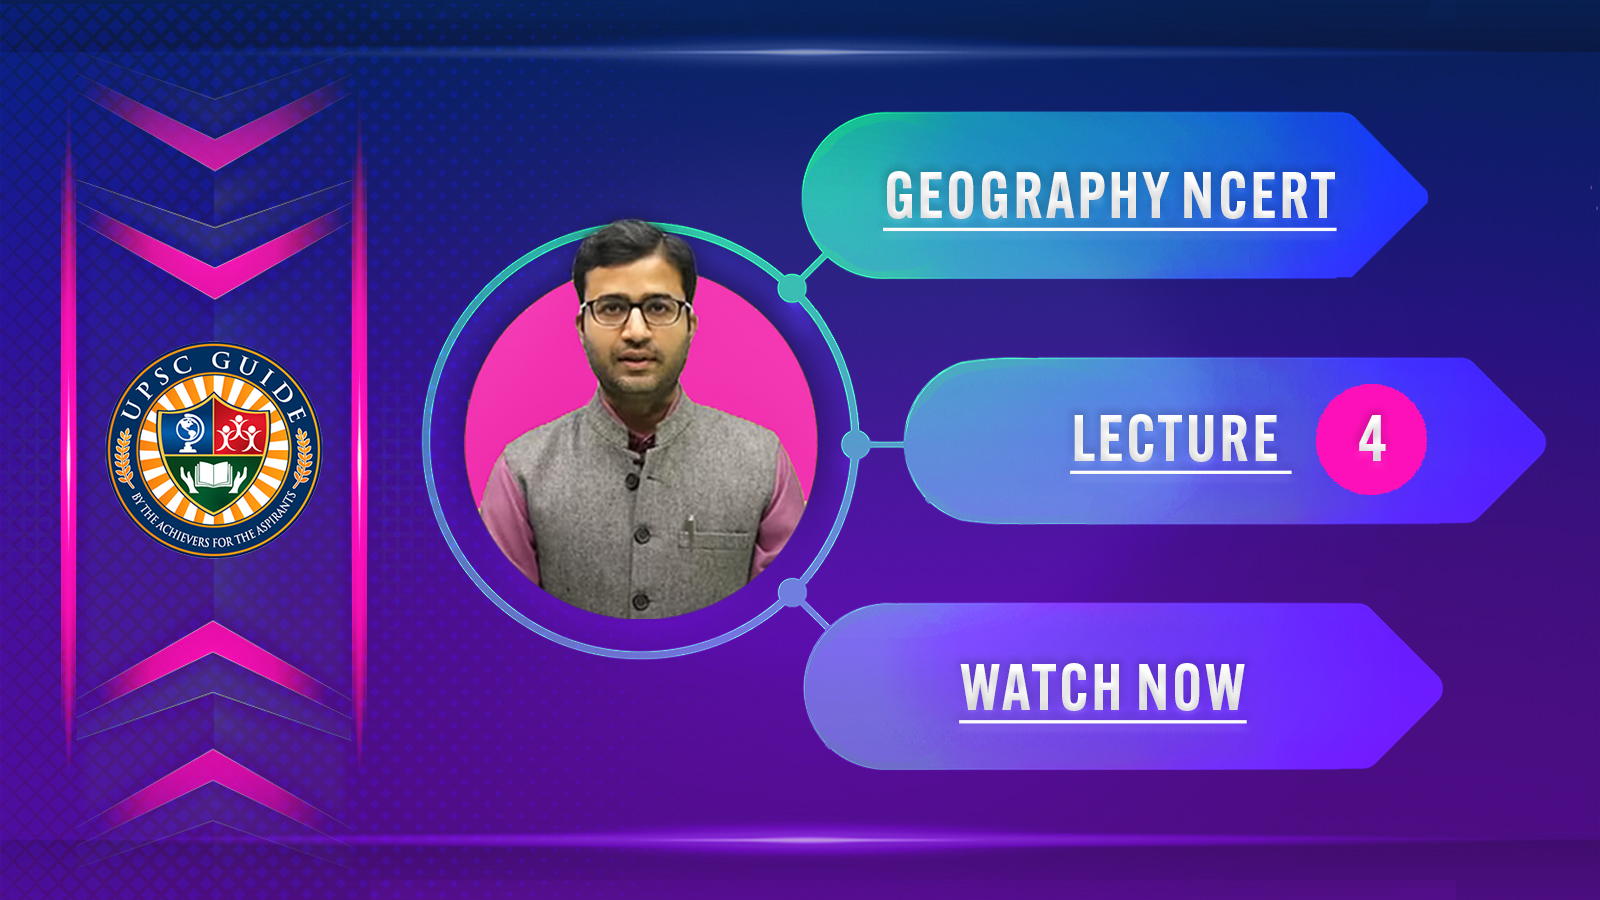 Geography NCERT || Lect 4 || BY Amit Garg Sir